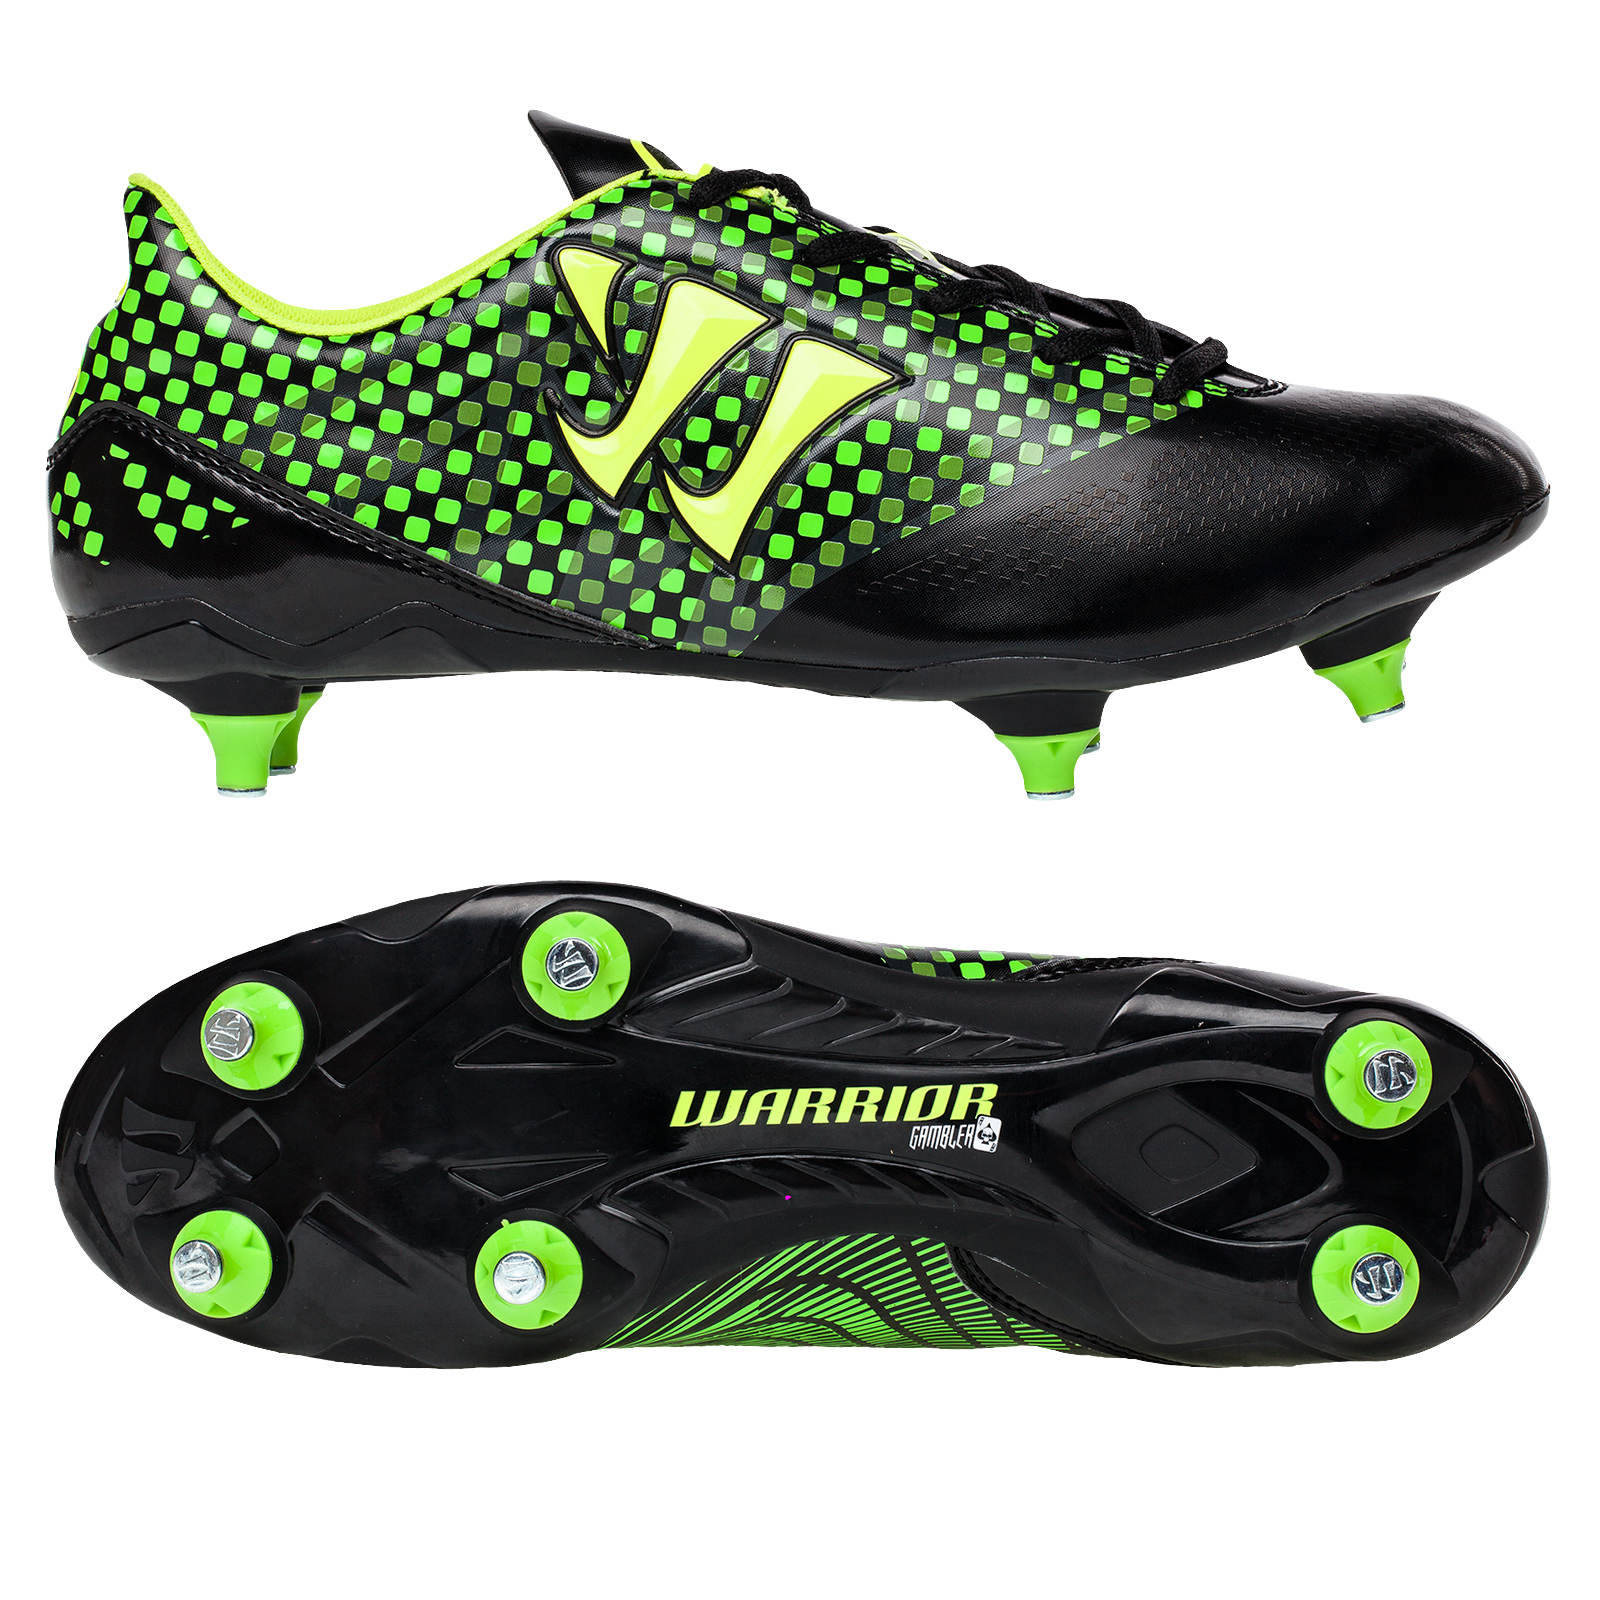 Warrior Sports Gambler Combat Soft Ground Football Boots- Blk/Grn Black